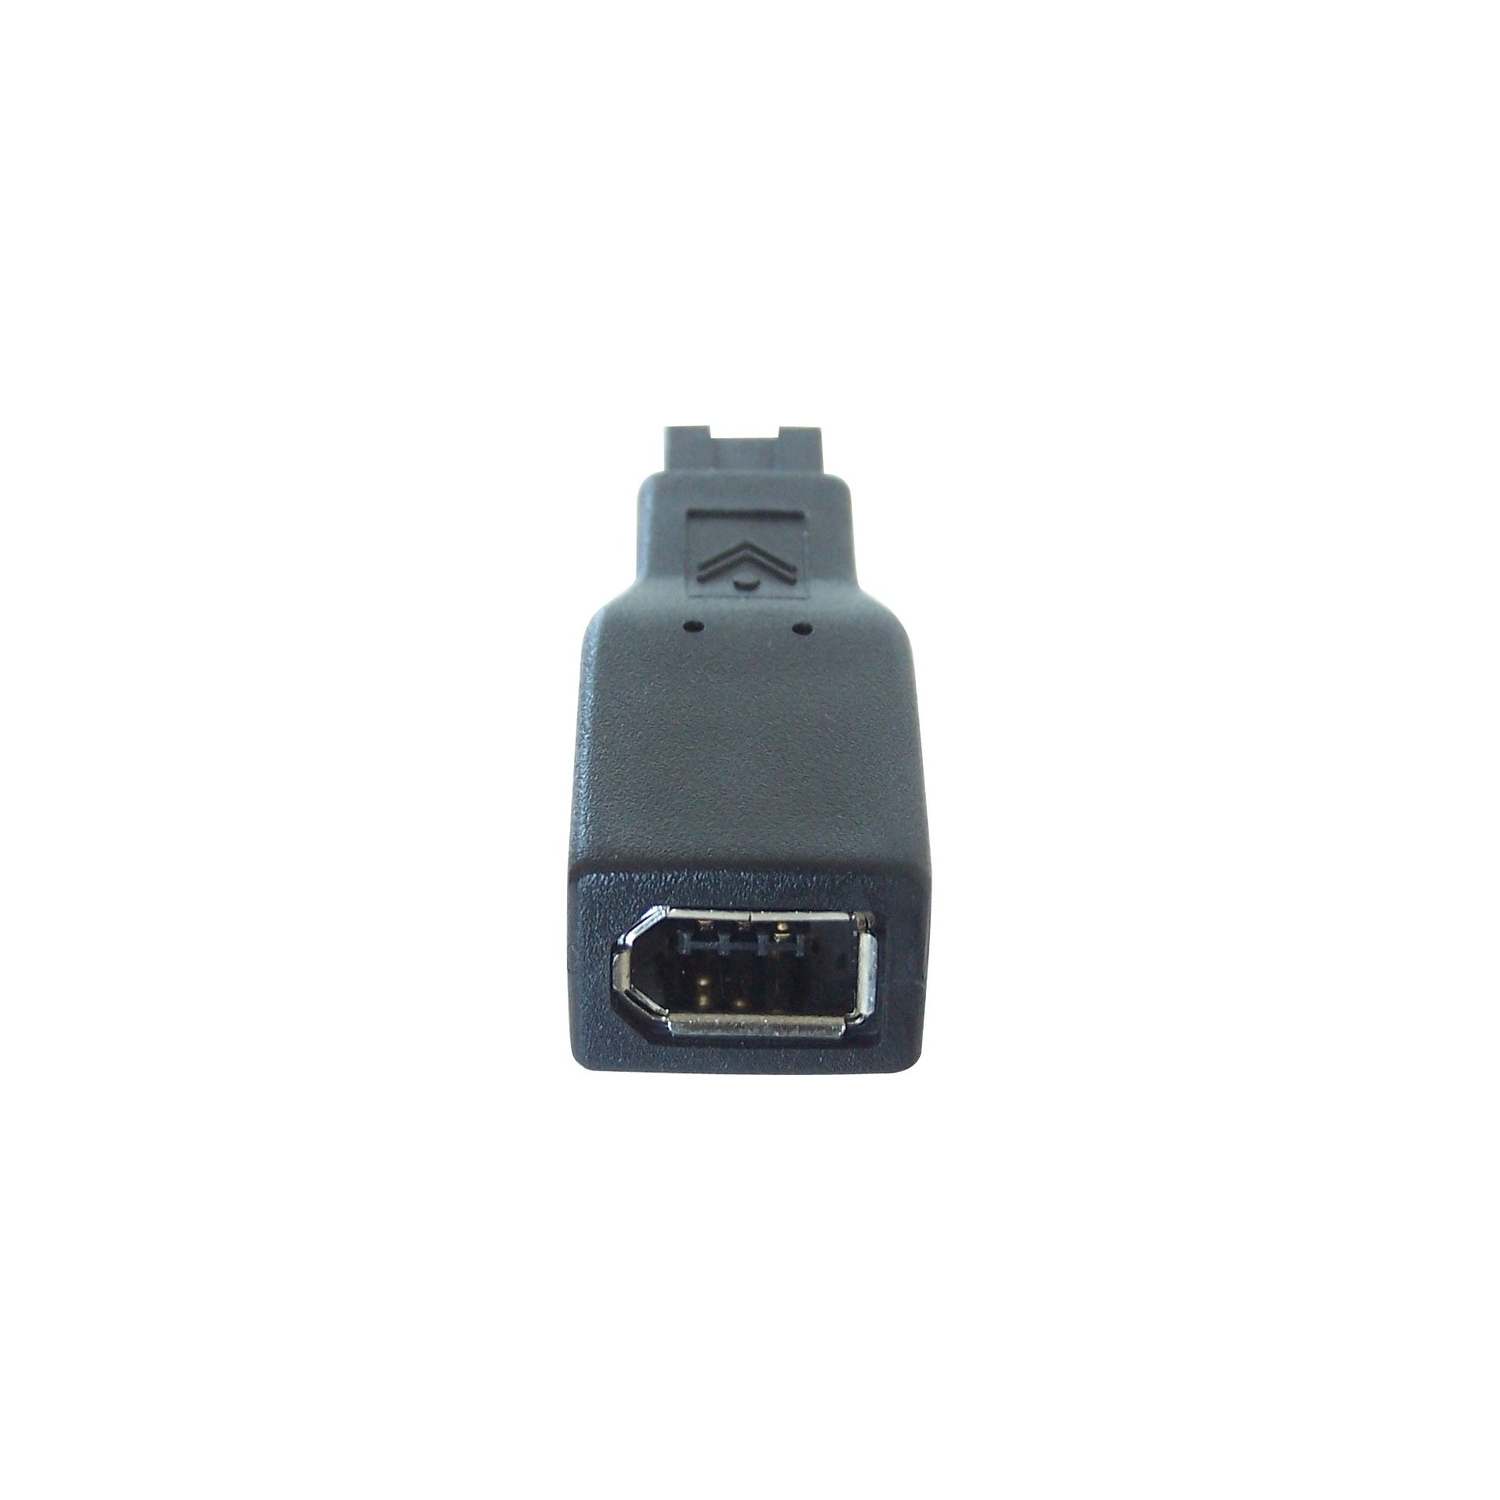 Siig CB-896111-S2 FireWire 800 9-pin to 6-pin Adapter : More from ...